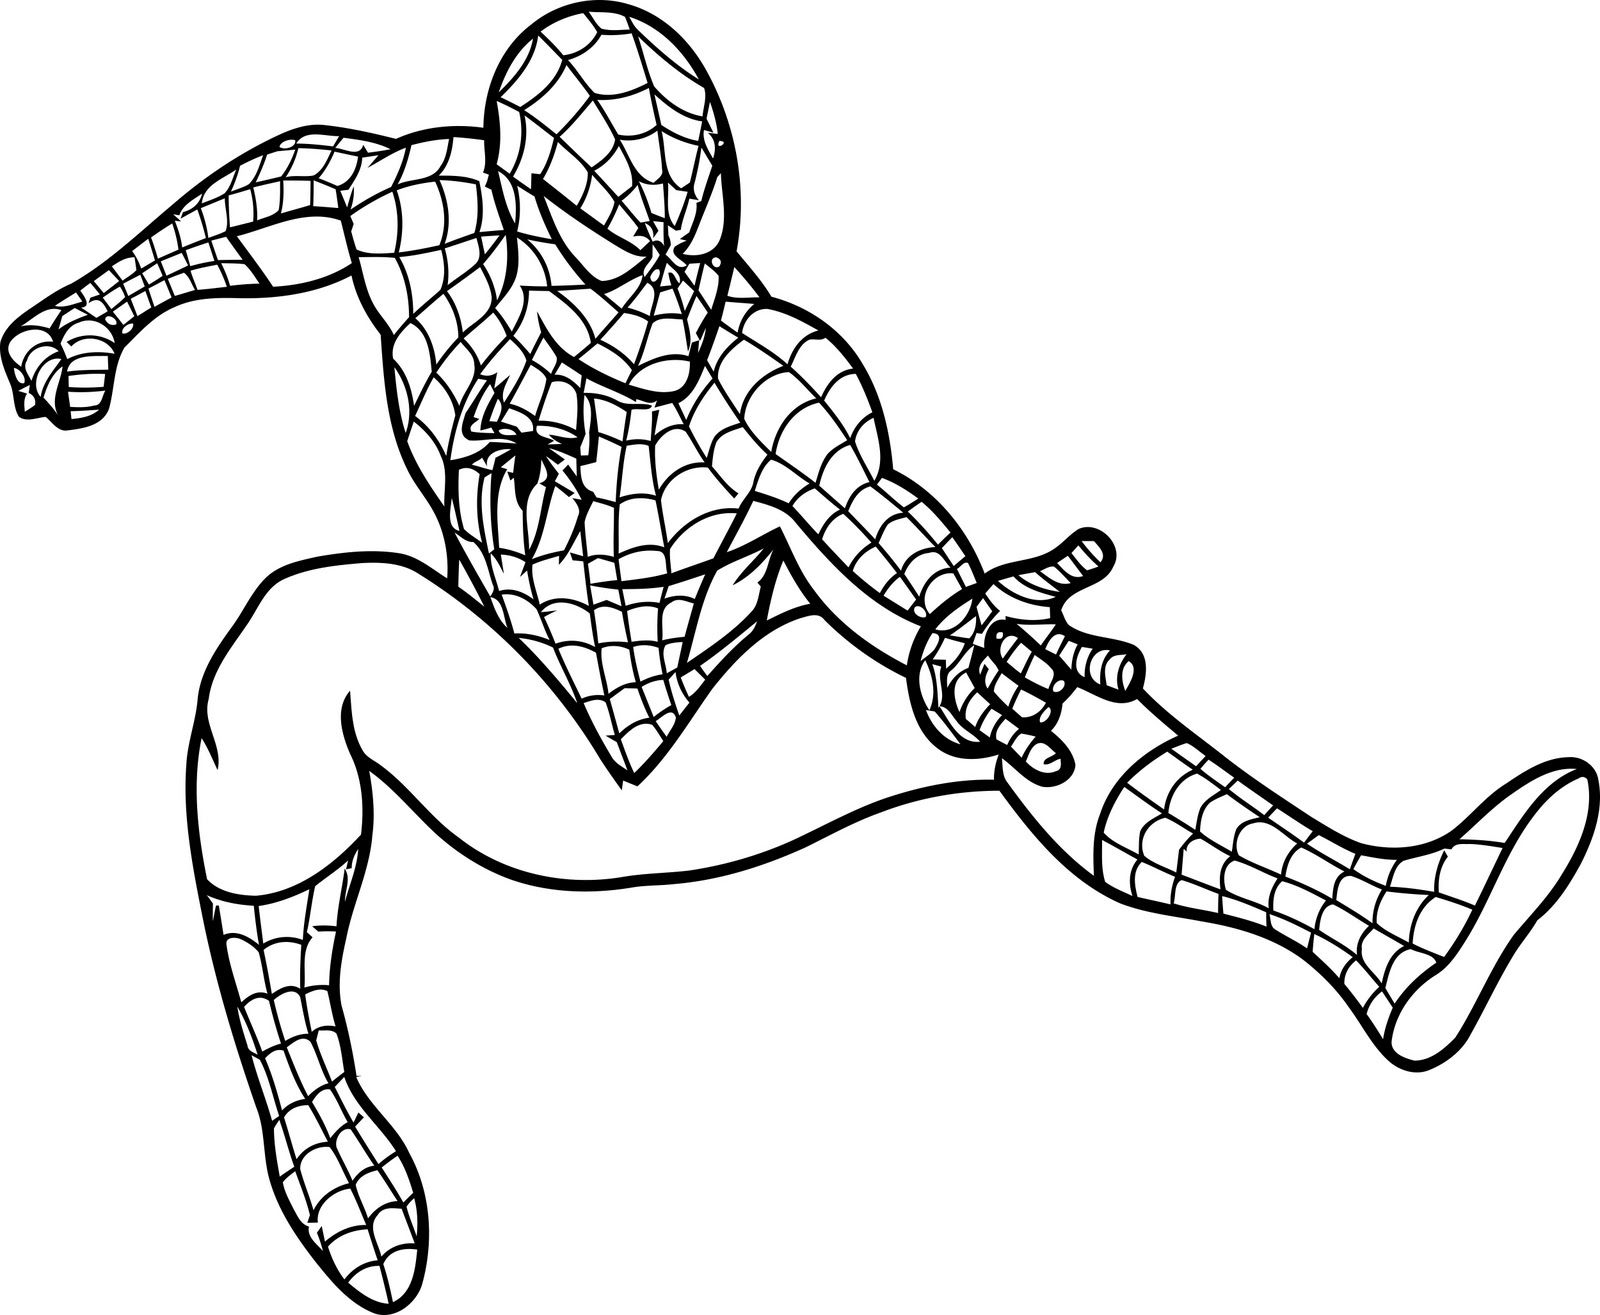 Free Printable Spiderman Coloring Pages For Kids | Projects to Try ...